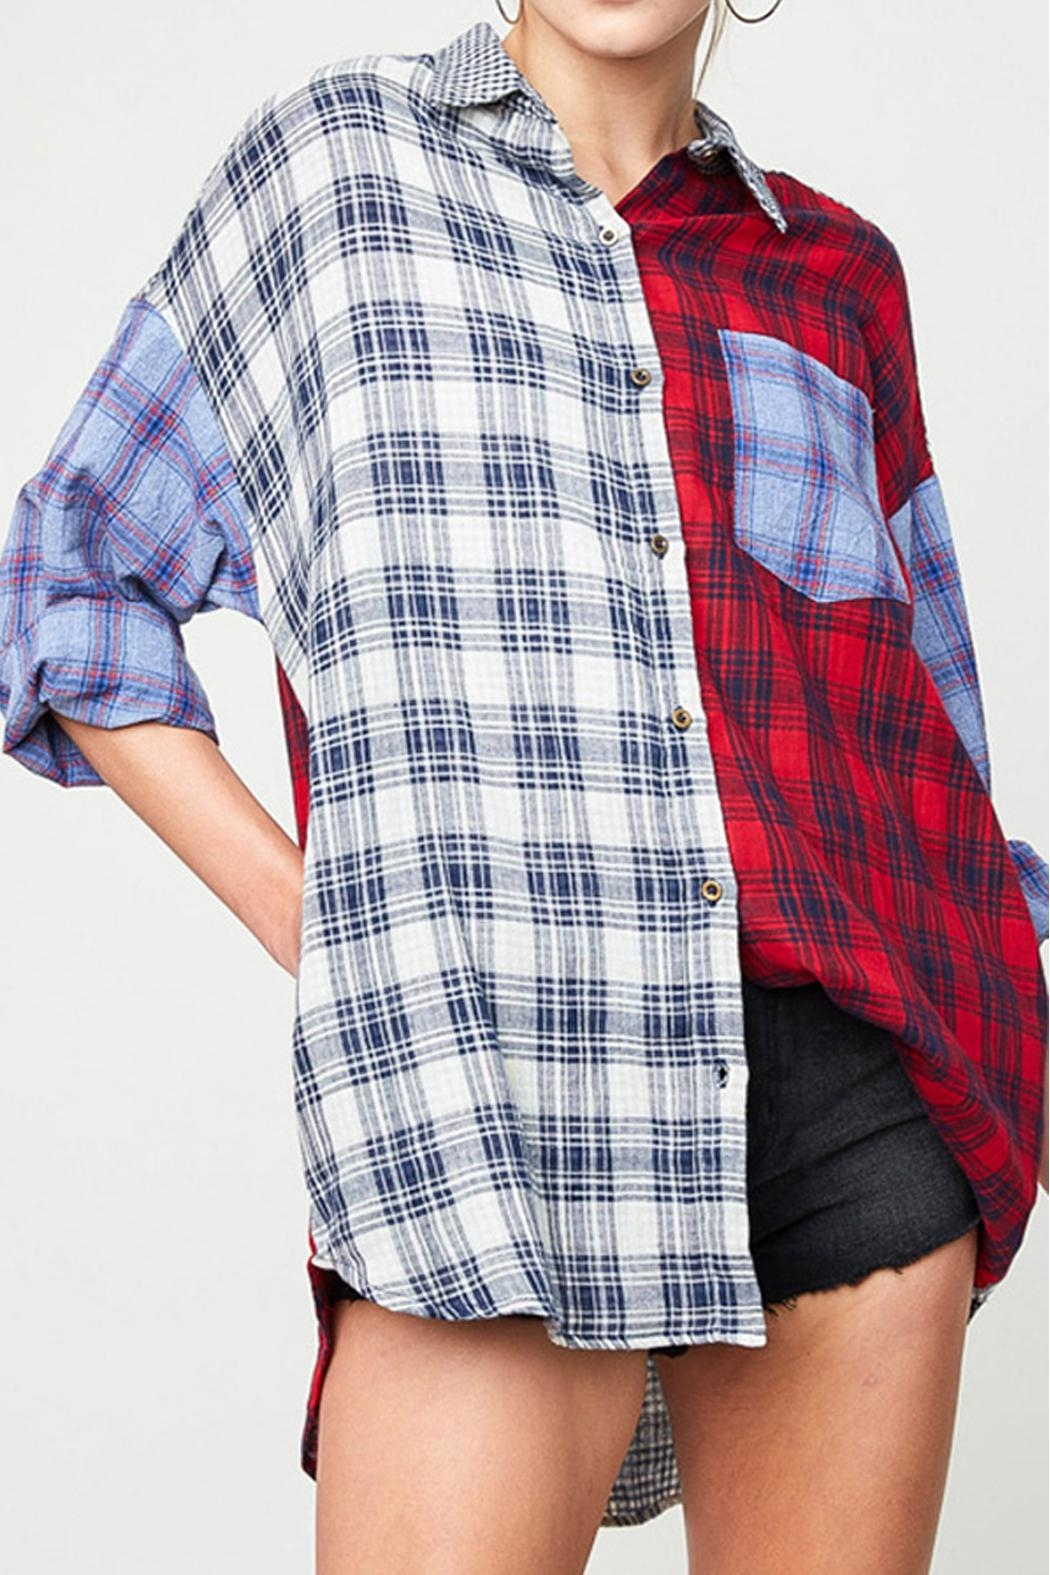 Hayden Los Angeles Mixed Plaid Shirt - Main Image